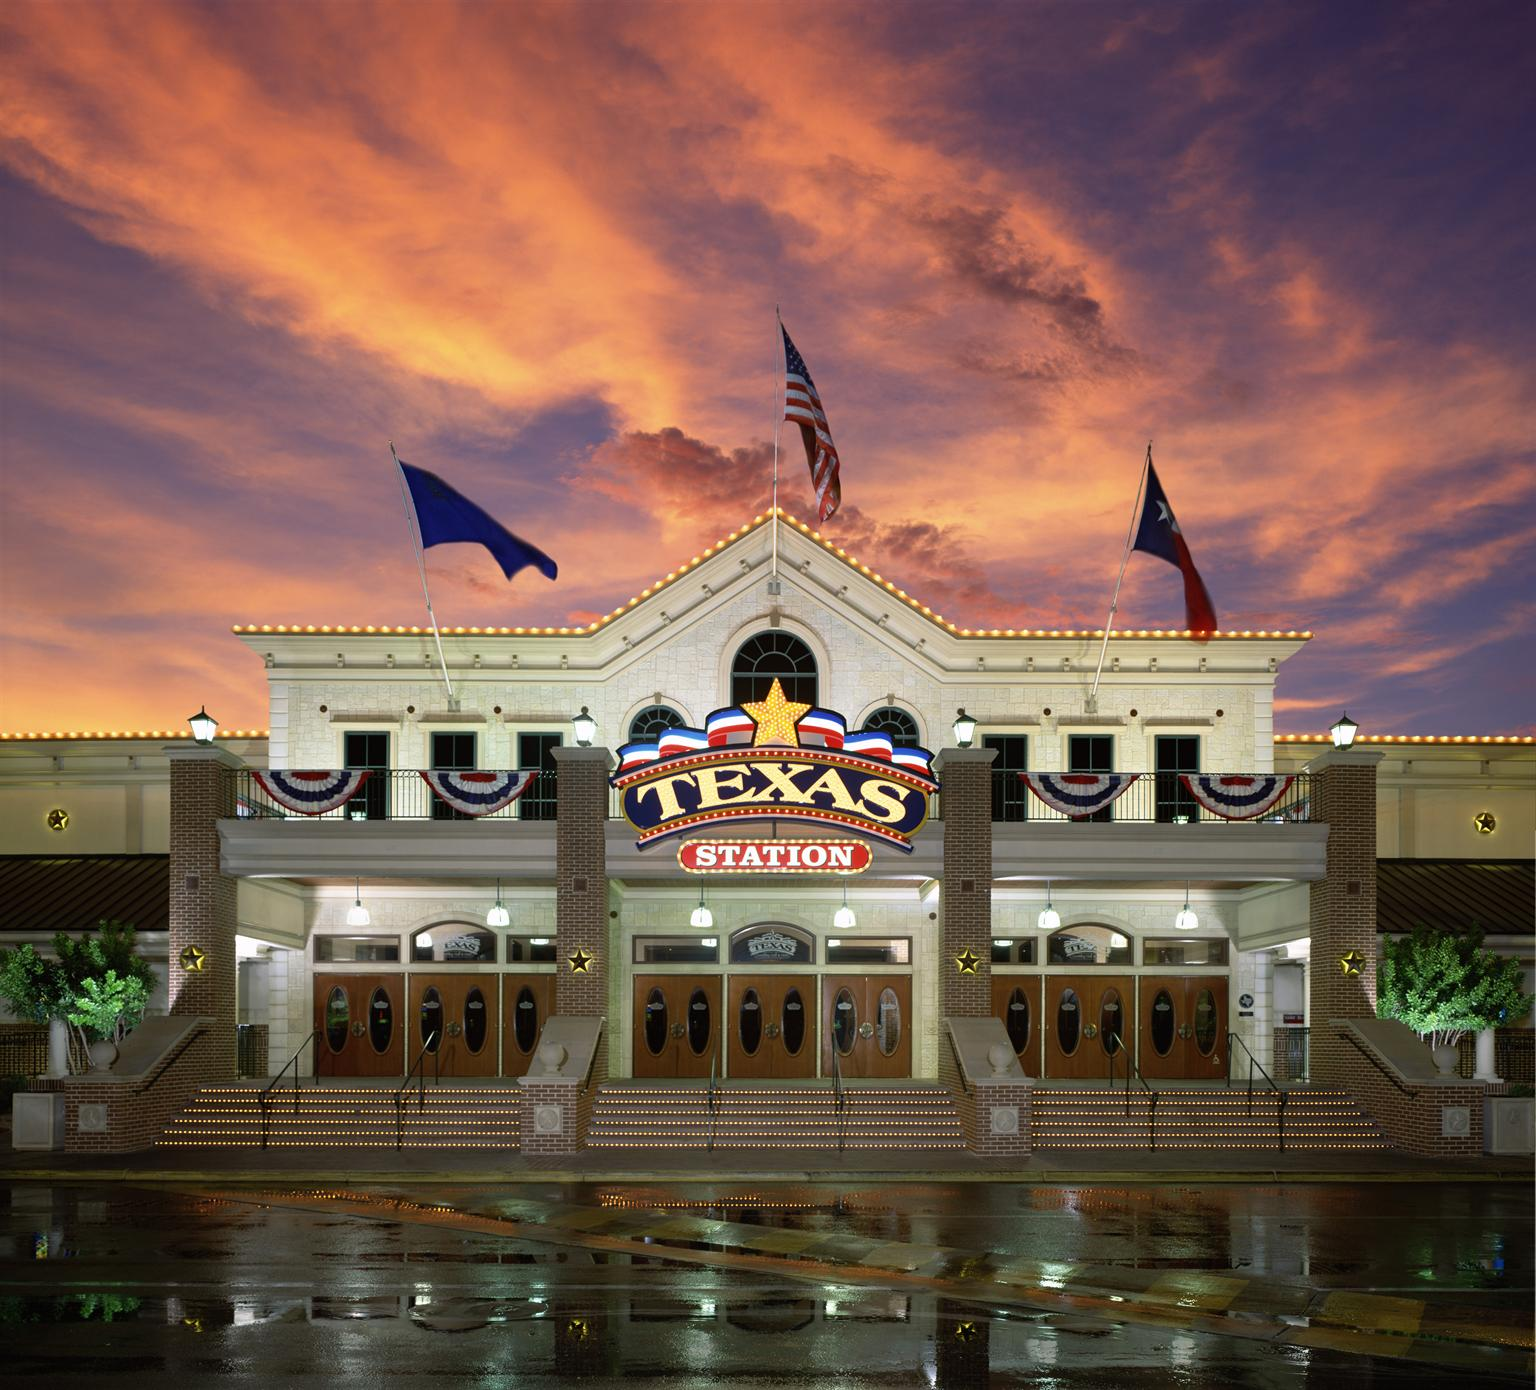 Texas Station Hotel And Casino